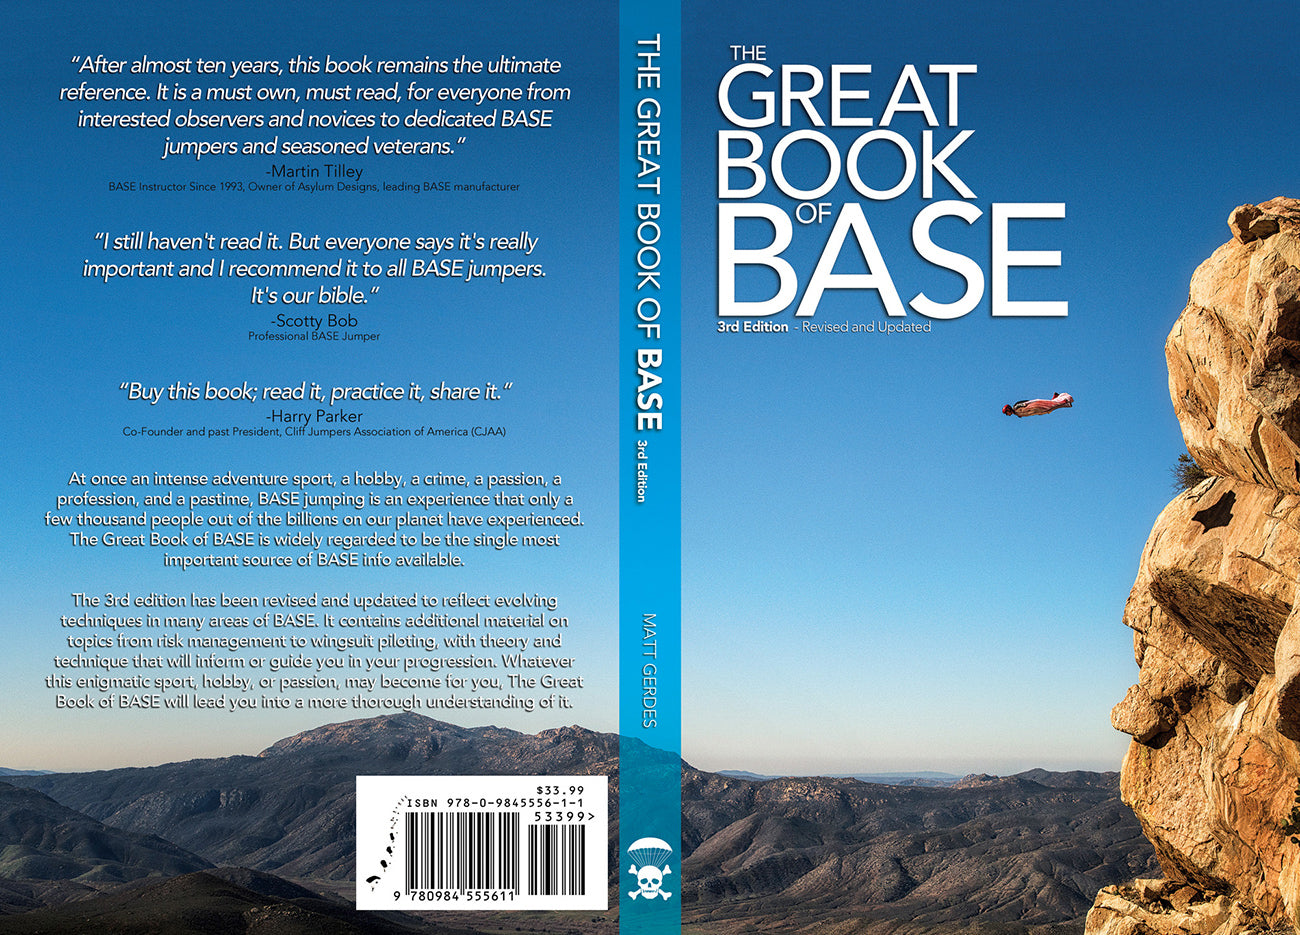 Great Book of BASE 3rd Edition